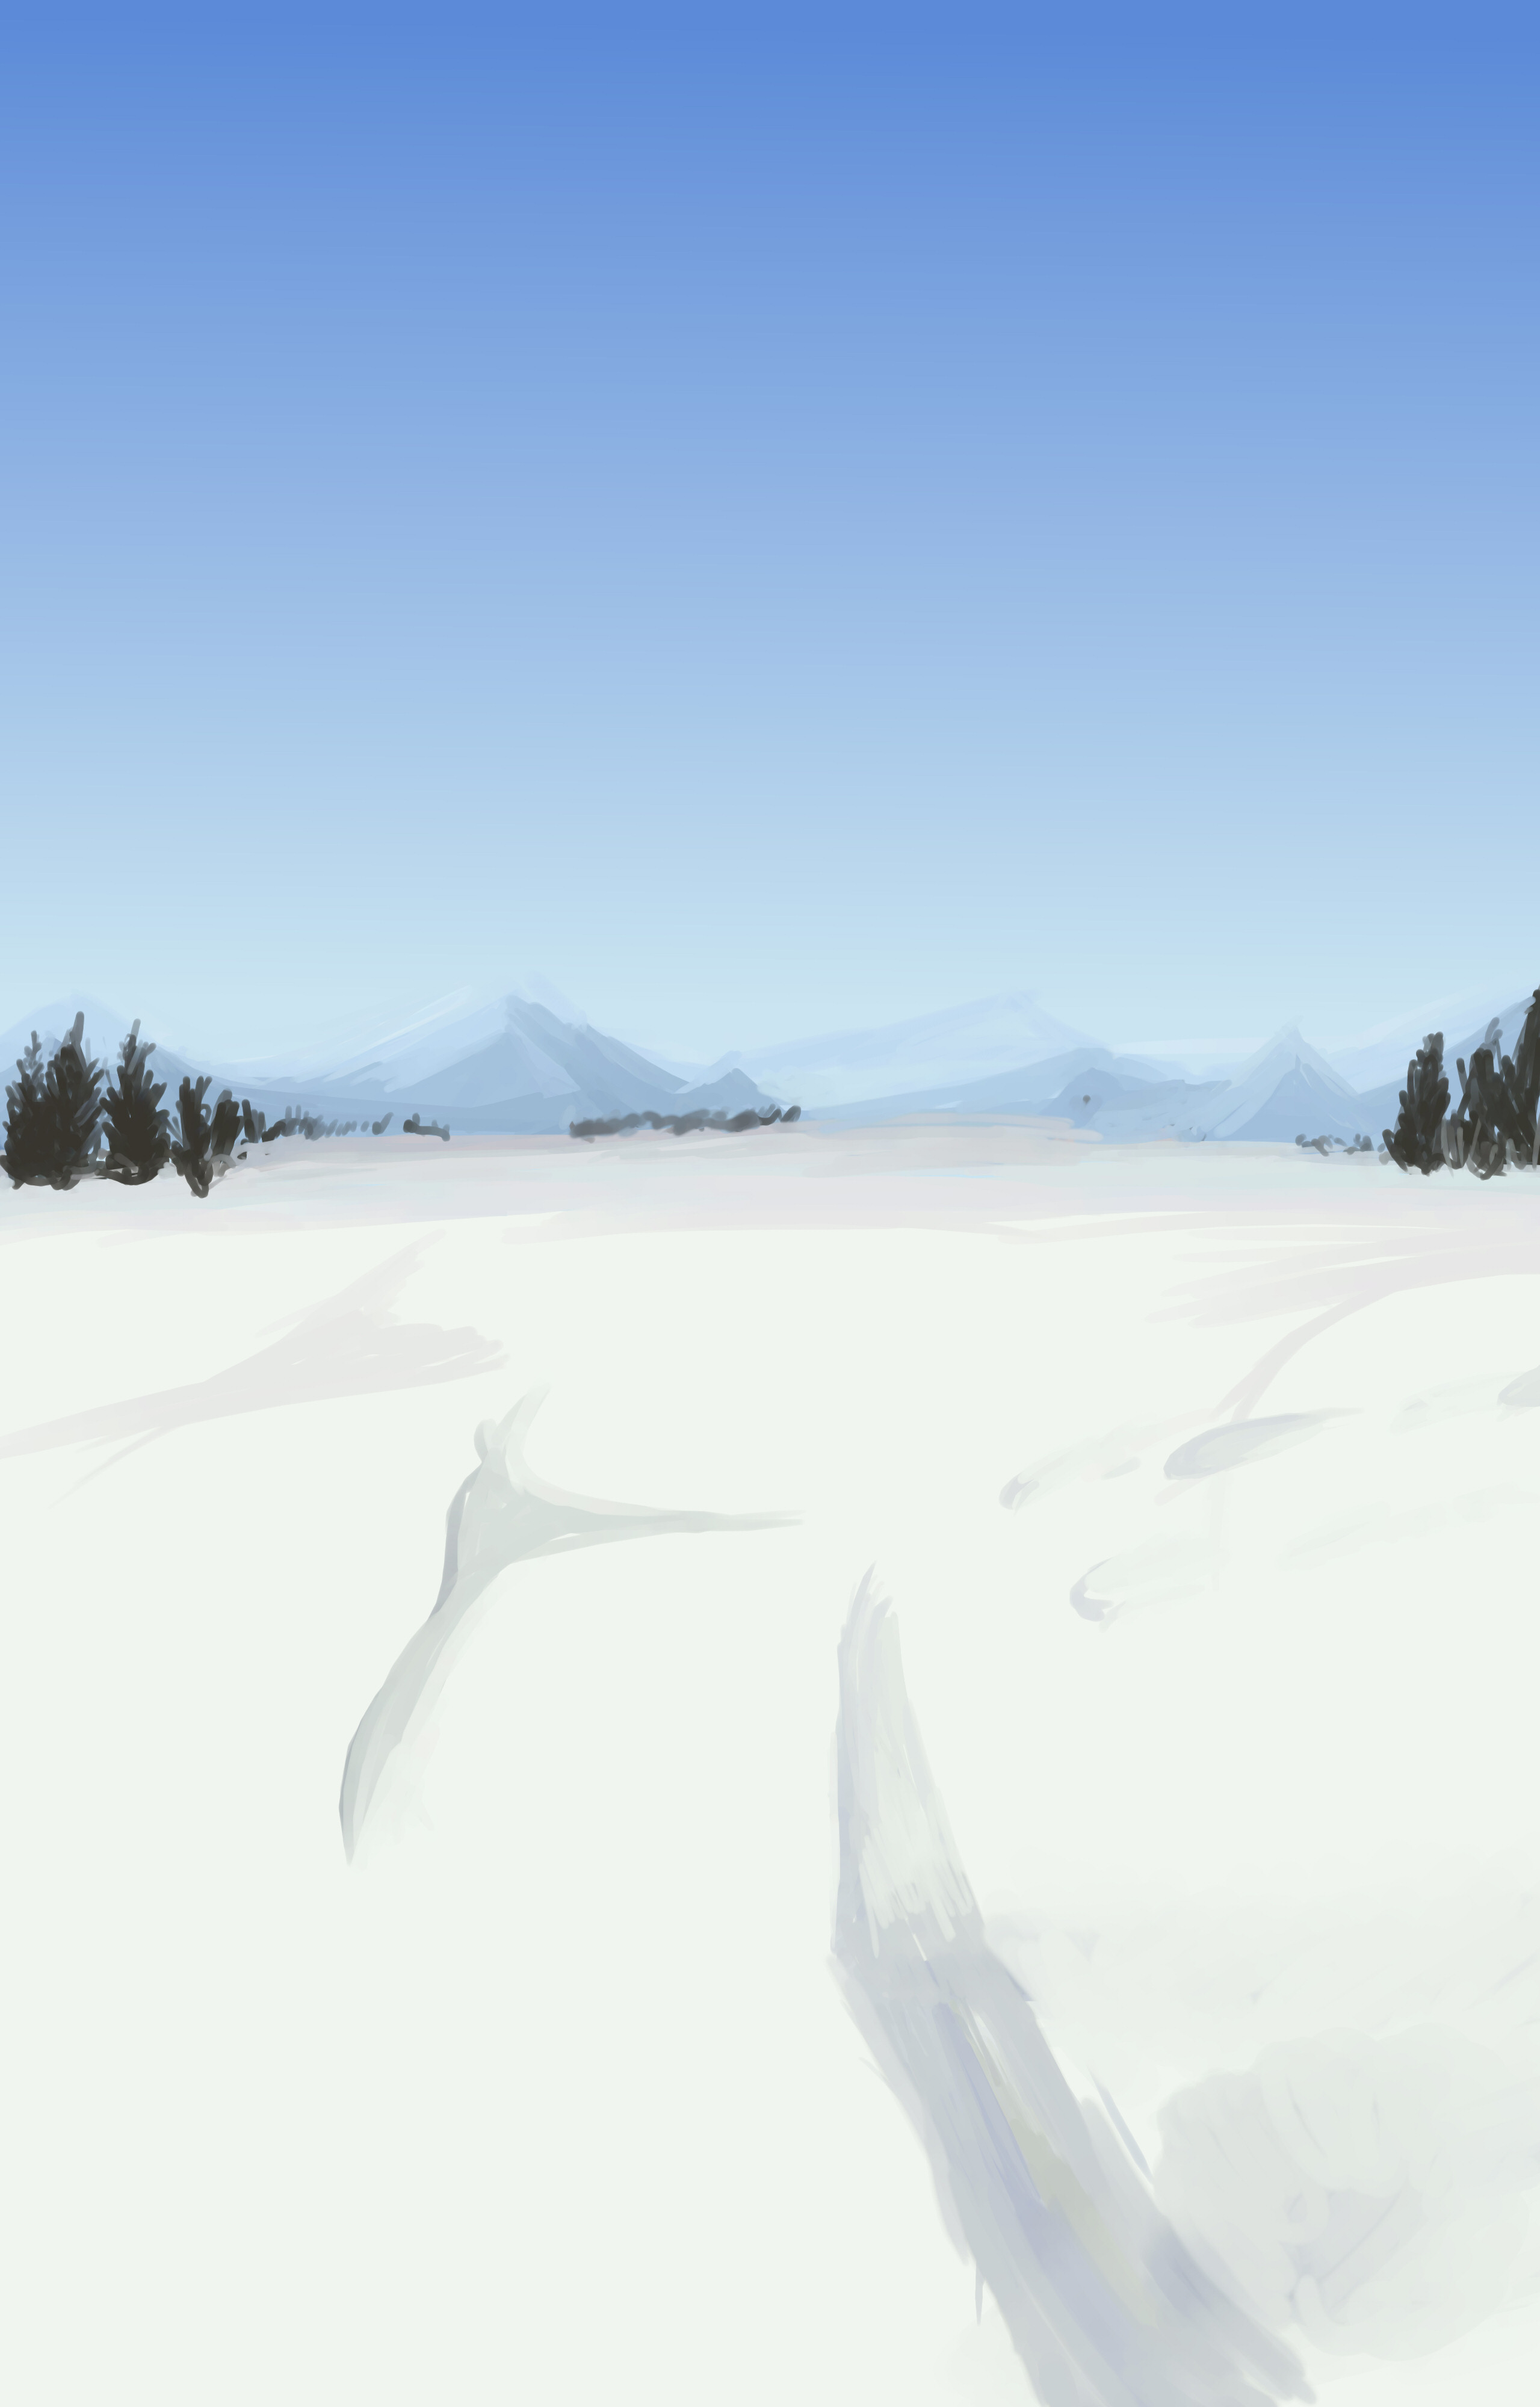 Anime Style Winter Background by wbd on DeviantArt